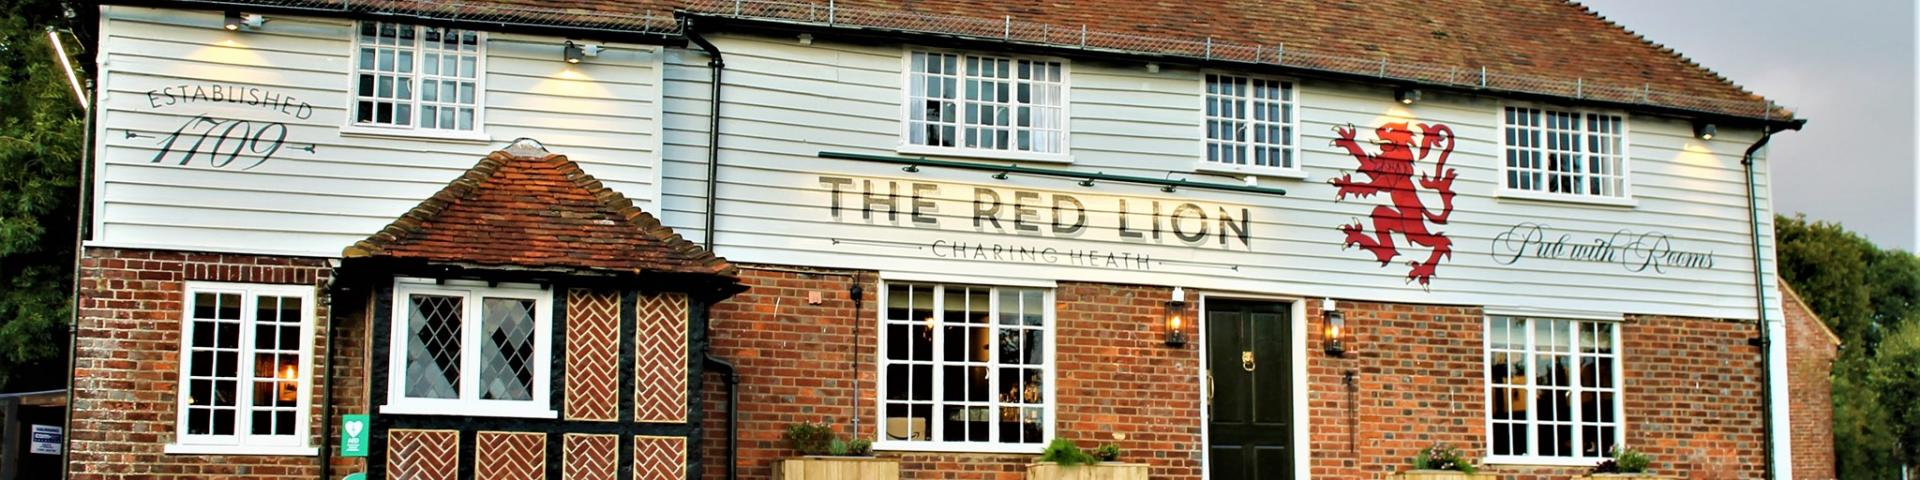 Red Lion, Charing Heath, Ashford